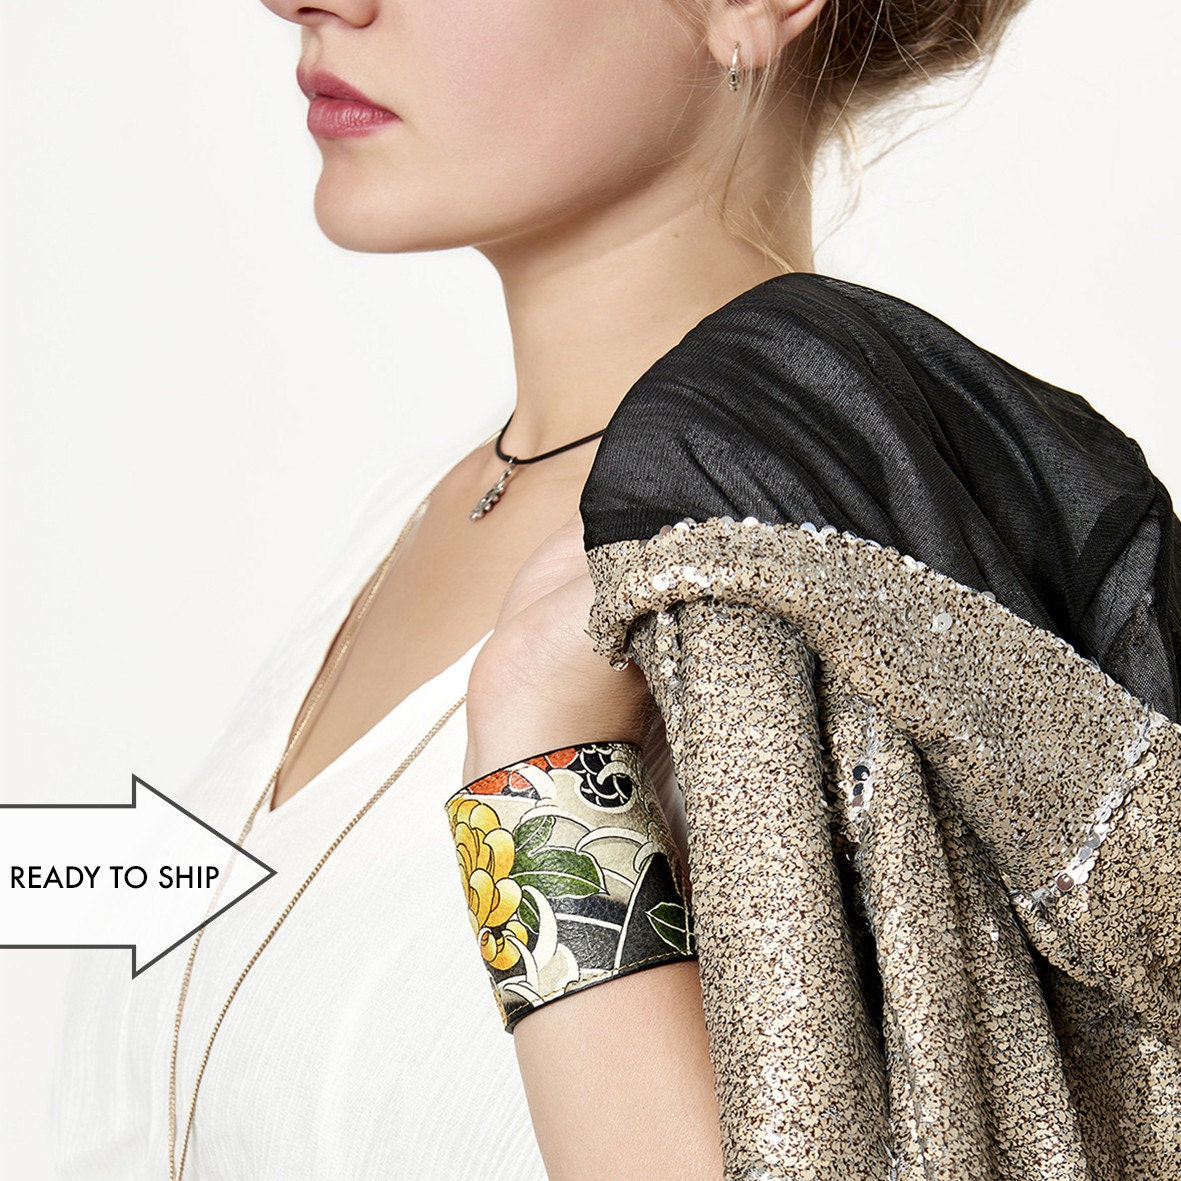 Leather Cuff Wallet also with Contactless Payment Chip  Chrysanthemum and Wave Tattoo SALE!